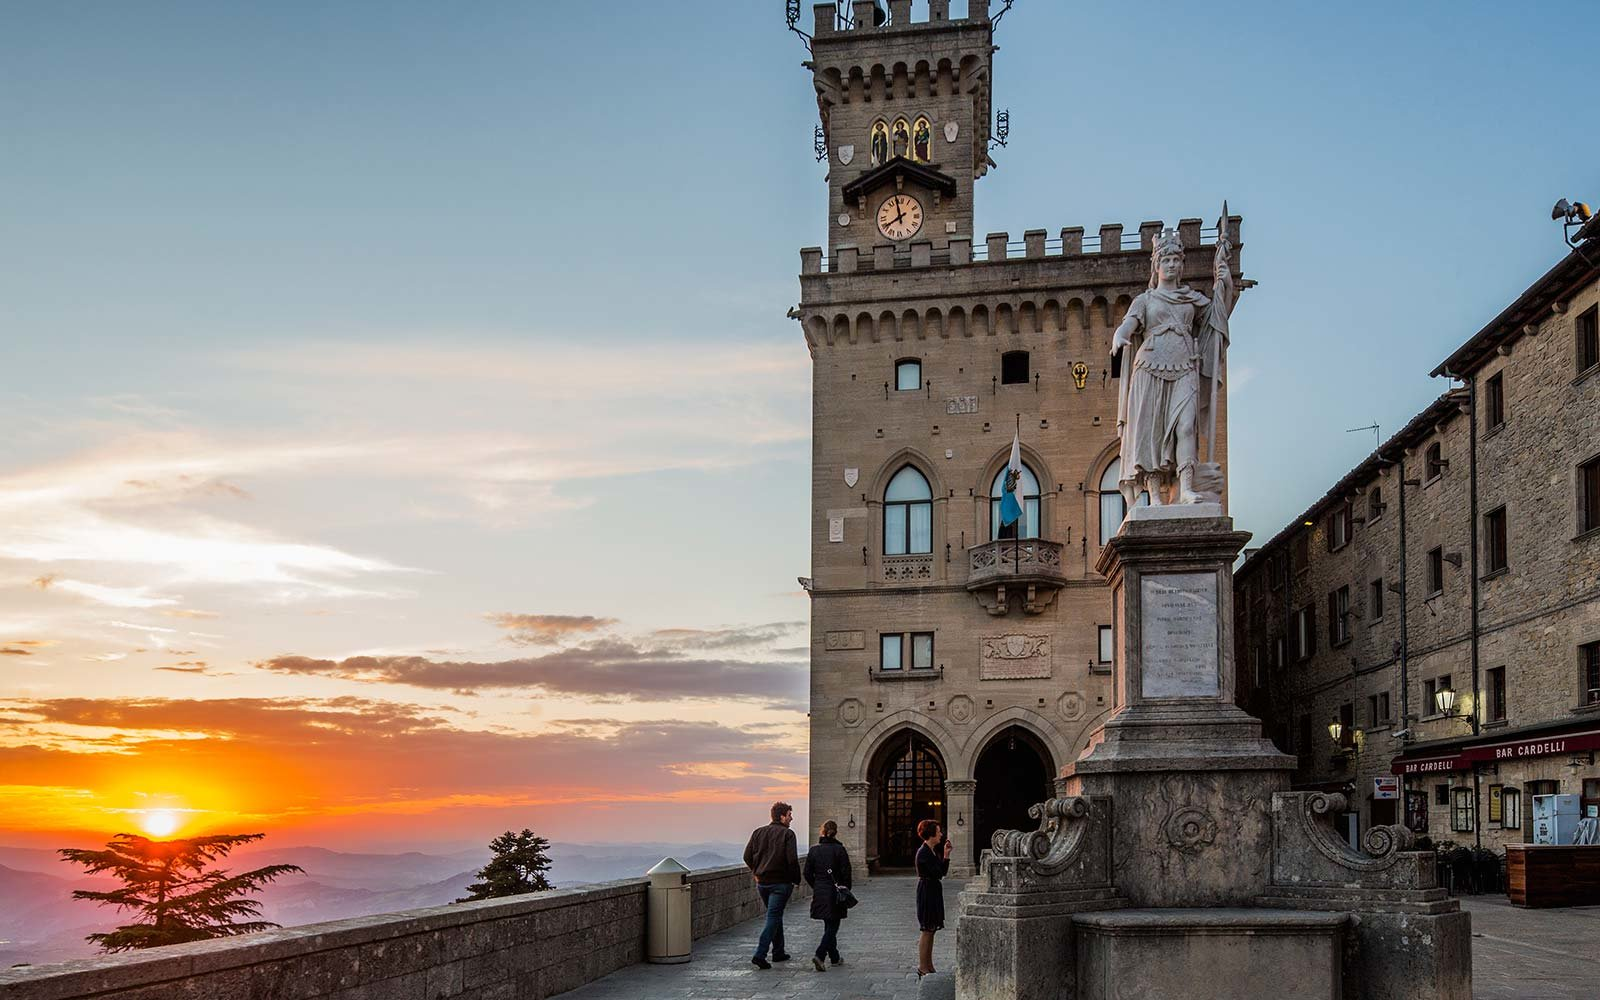 Palazzo Pubblico (Public Palace, Town Hall) and the  Statua della Libertà (Statue of Liberty) by Stefano Galletti (1876) at sunset San Marino